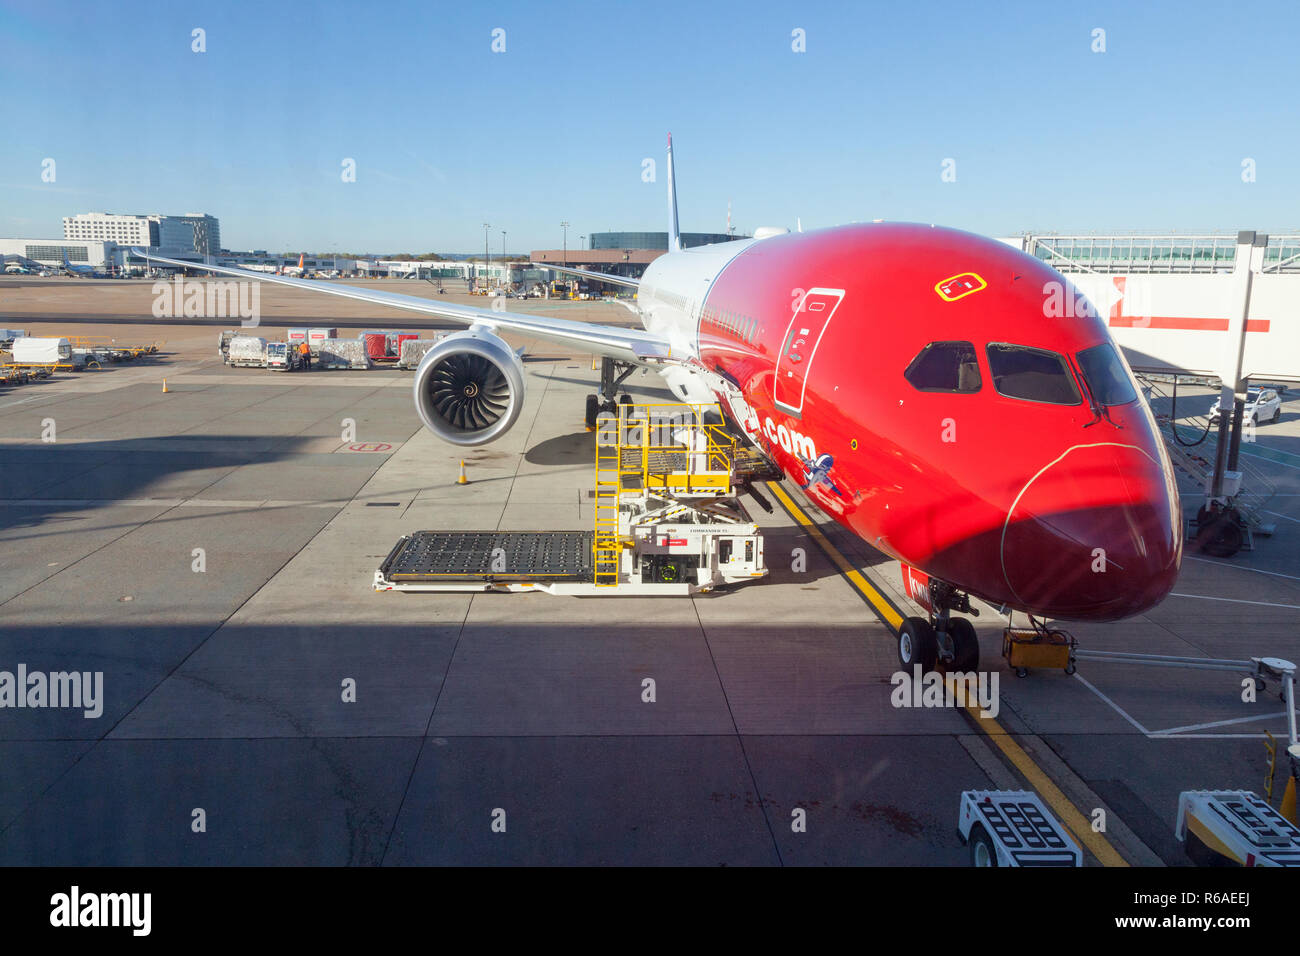 Norwegian Air aircraft at London Gatwick Airport LGW,  England, United Kingdom. - Stock Image